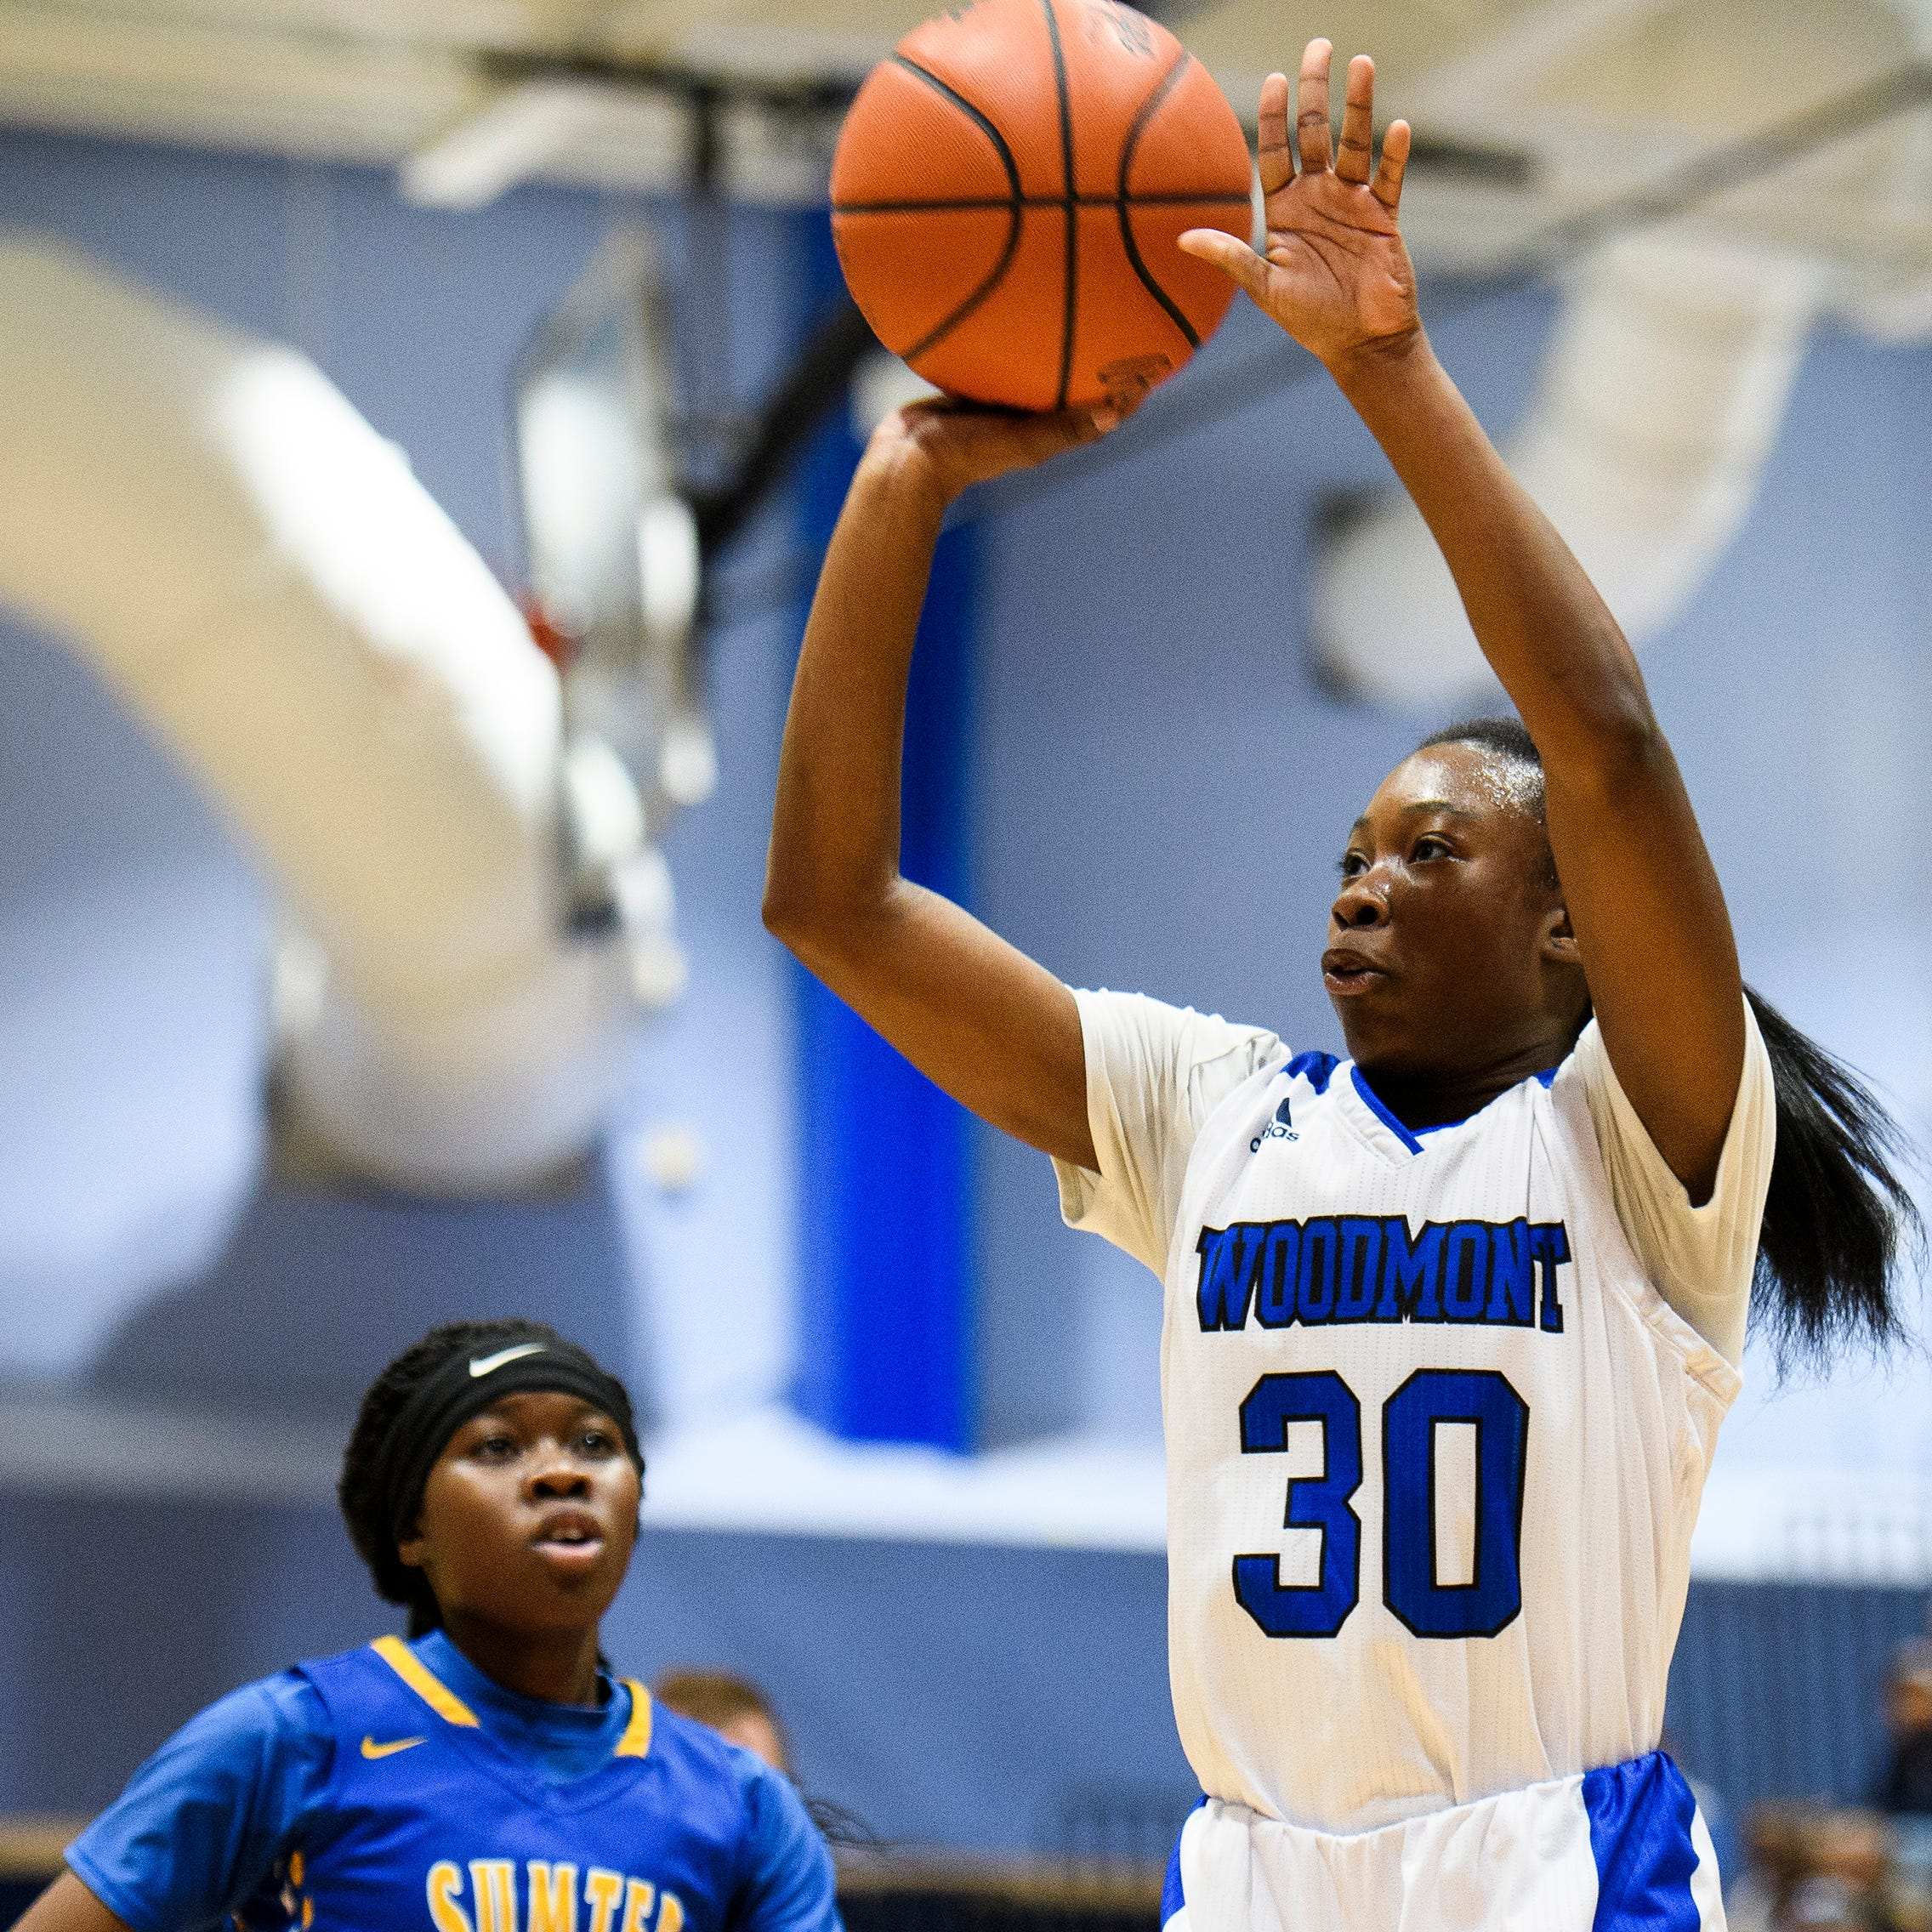 Woodmont's JaRae Smith (30) attempts to shoot the ball during their game against Sumter on Monday, Feb. 18, 2019.